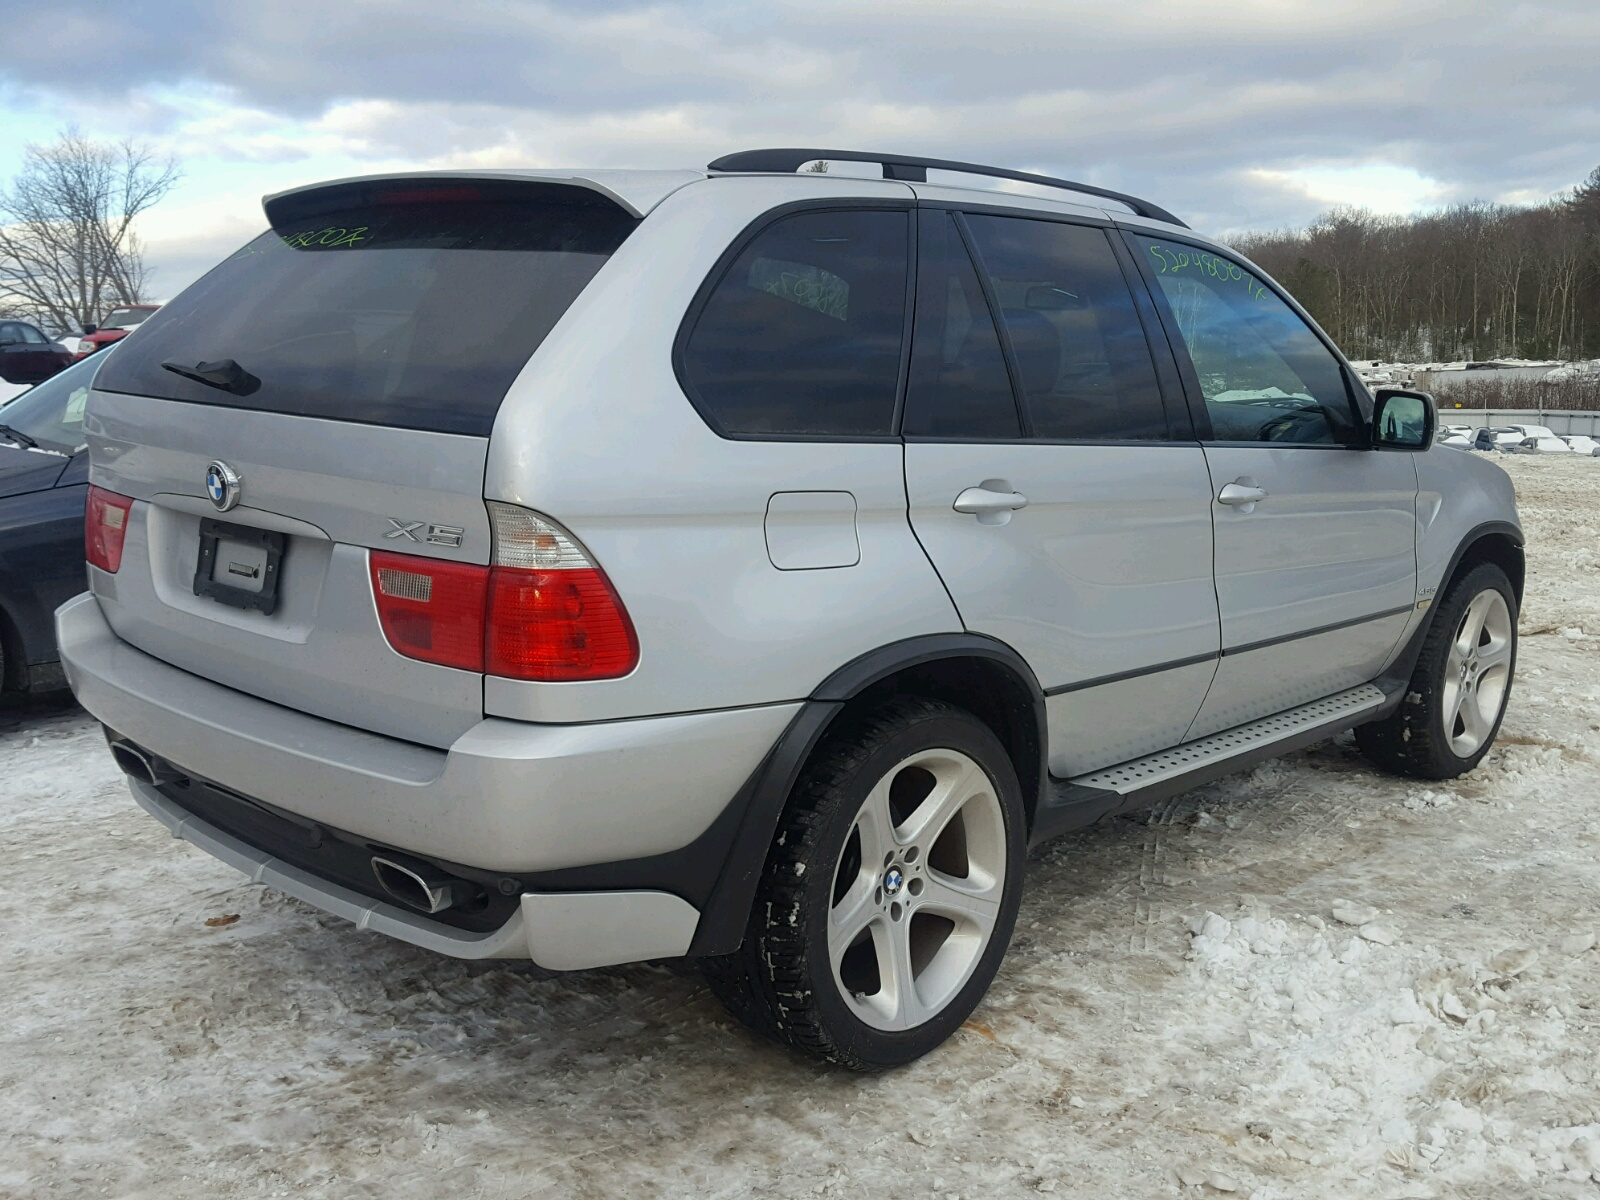 2002 Bmw X5 4.6Is - Front End Damage - 5UXFB93572LN78368 (Sold)